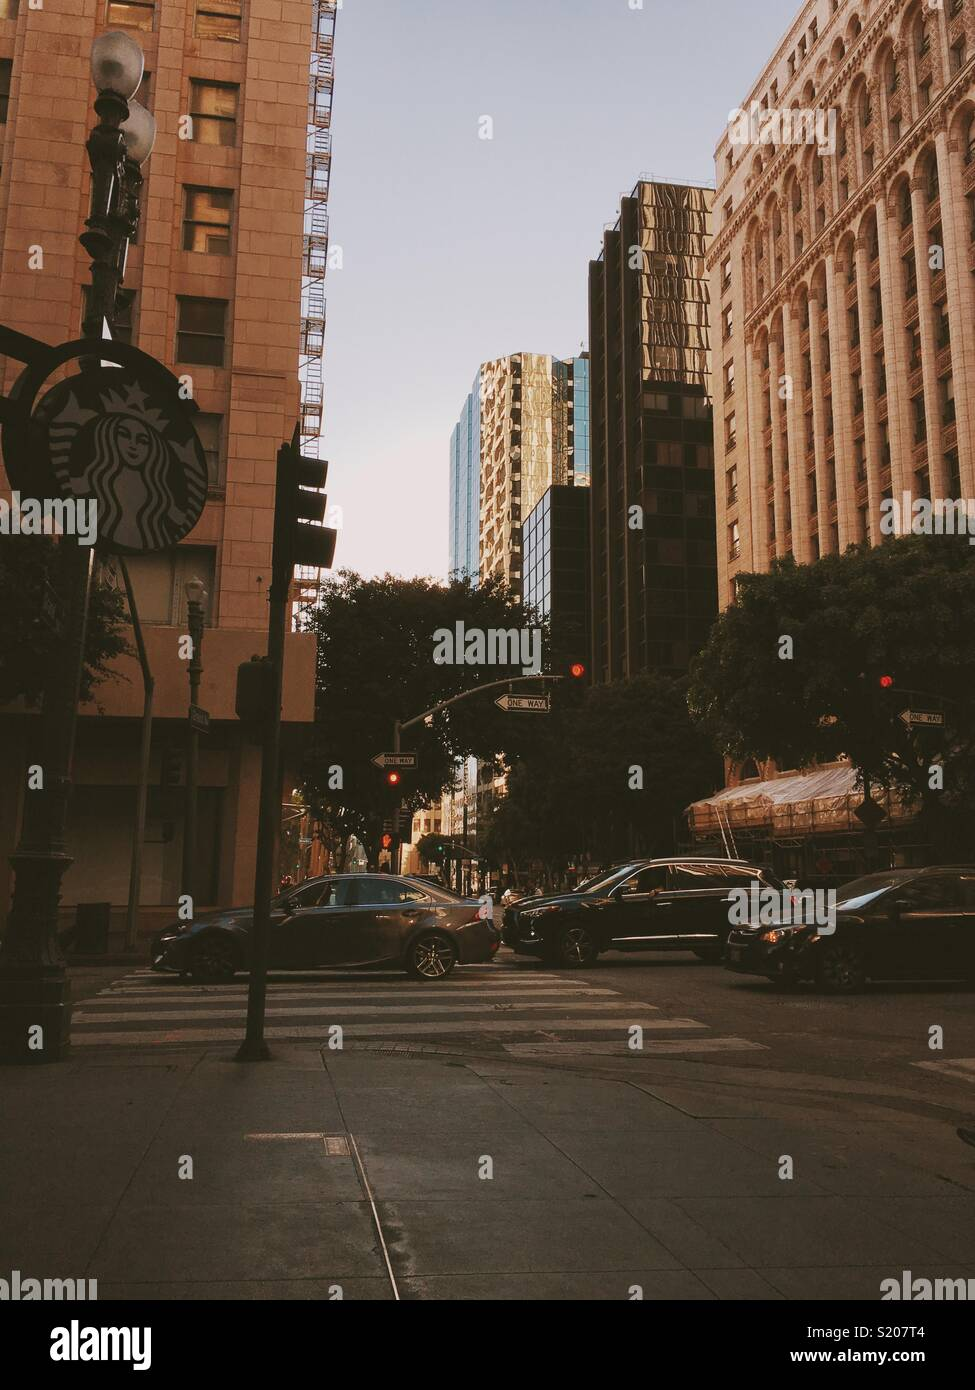 Downtown LA, intersection at mid afternoon. - Stock Image